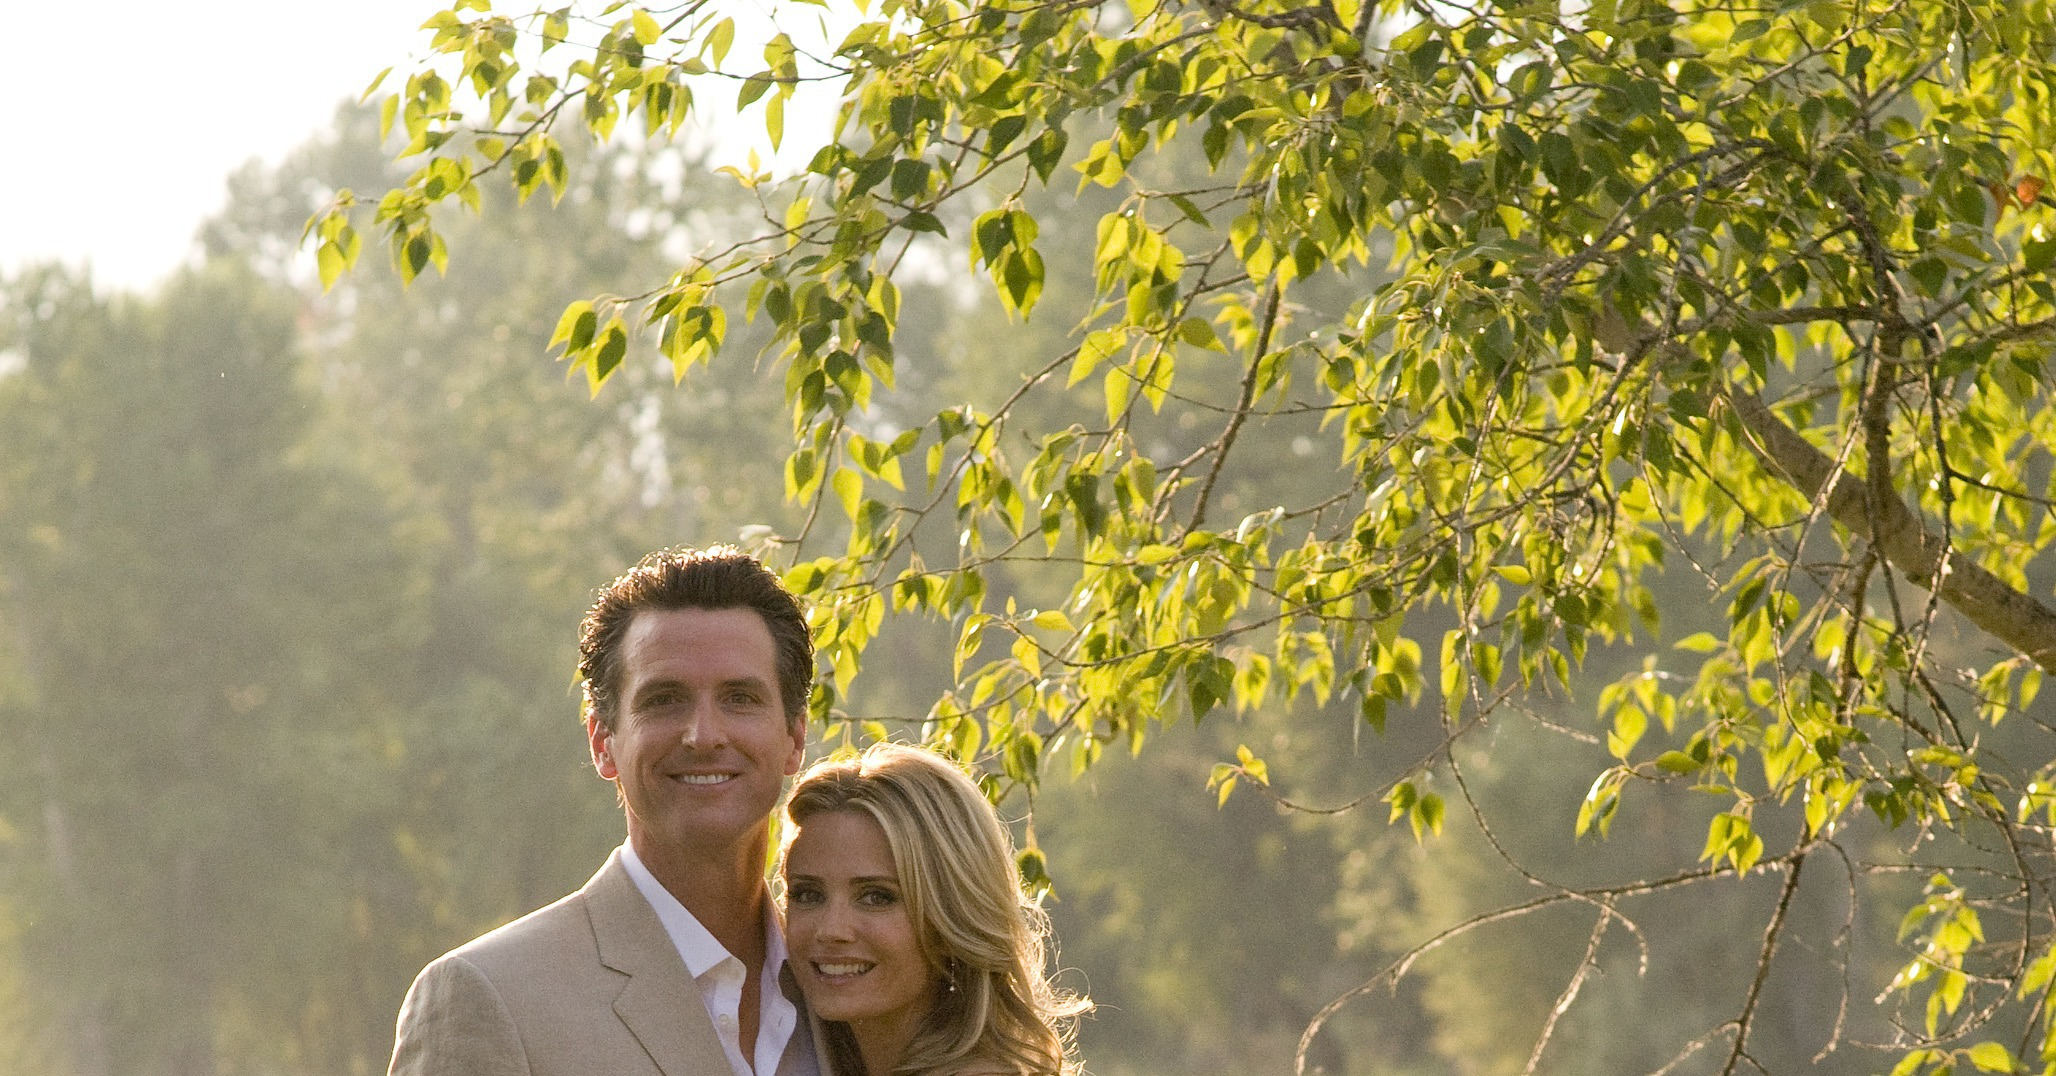 newsoms personals Kimberly guilfoyle was married to gavin newsom, california's lieutenant governor she was newsom's wife when he was san francisco mayor they later divorced.